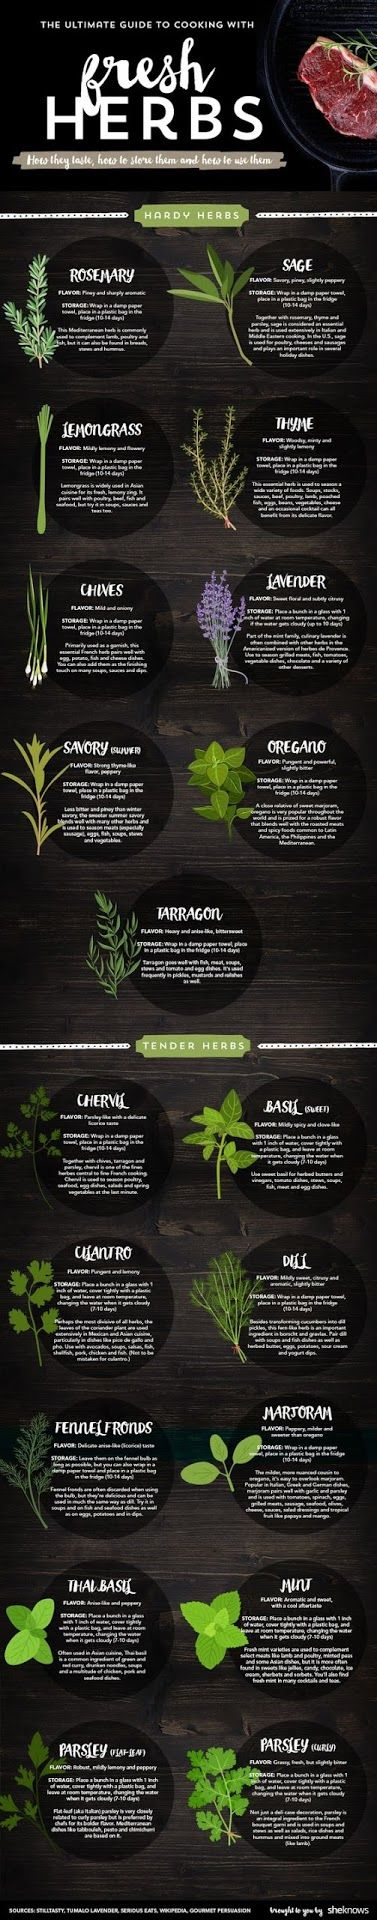 Fresh herbs and health; Ultimate Guide to Cooking with Fresh Herbs - Infographic